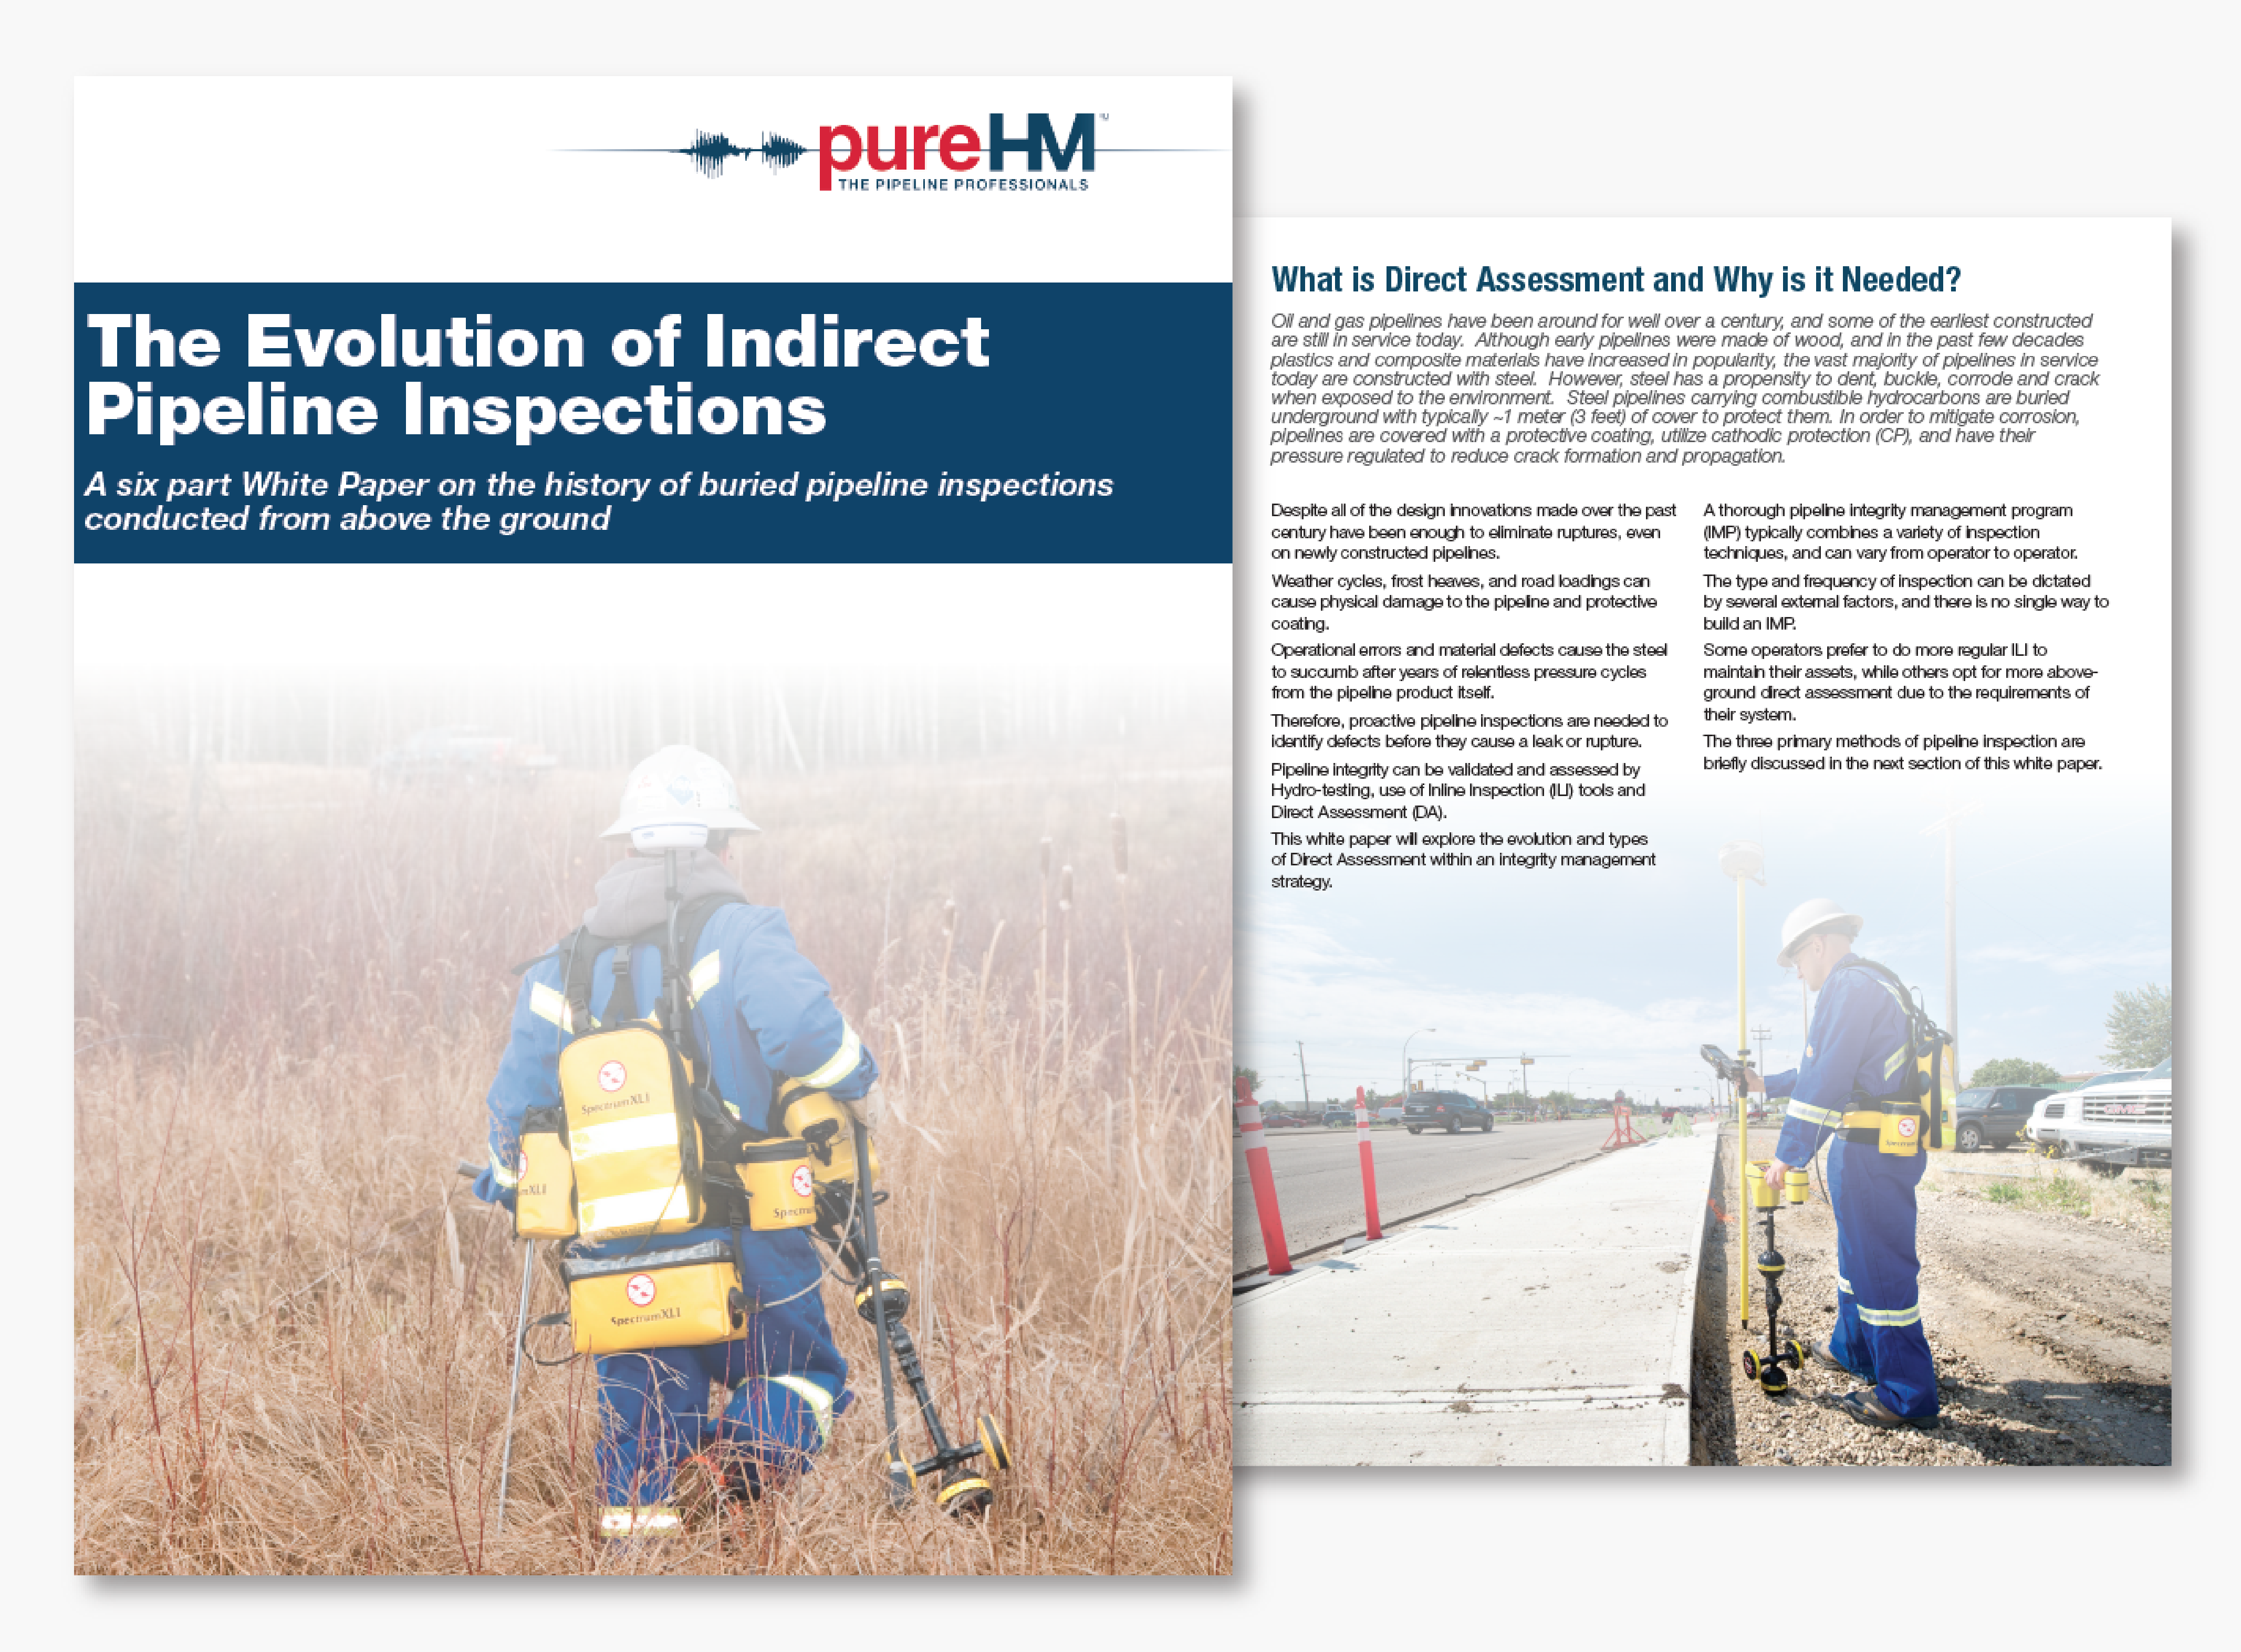 The Evolution of Indirect Pipeline Inspection